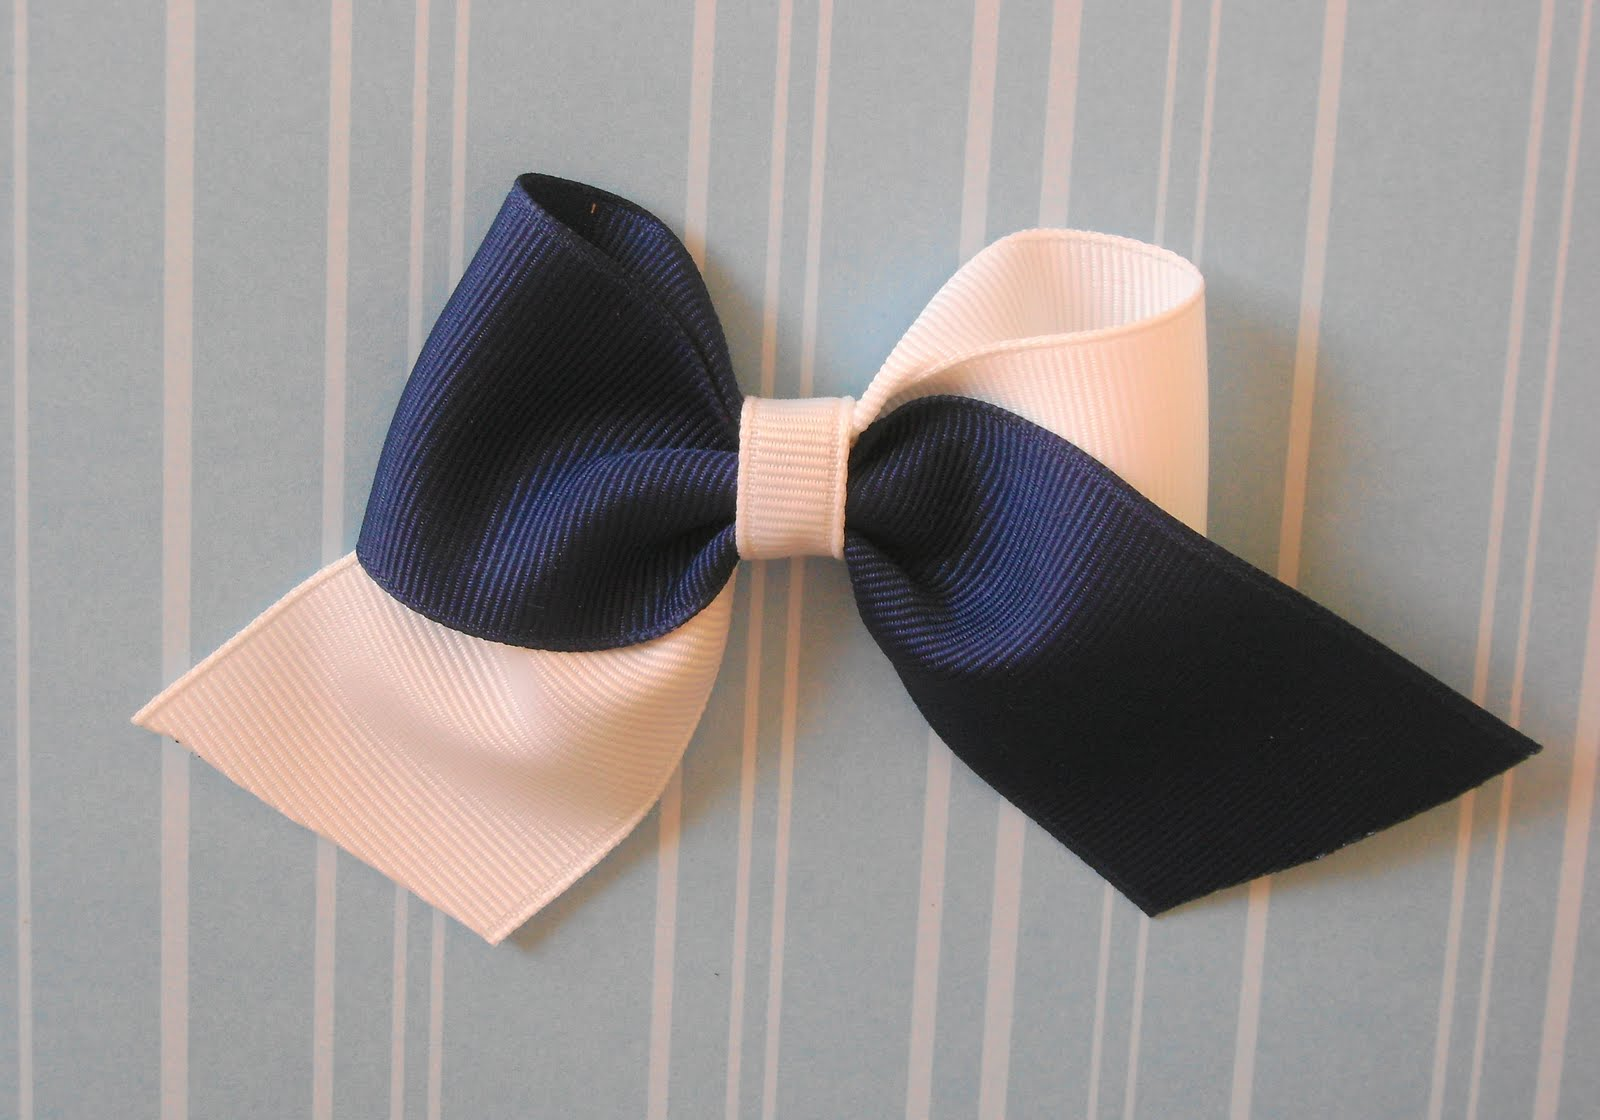 This Bow Is Super Cute And Fun To Make I Use 2 Colors Of Grossgrain Ribbon Fused Together Then Construct The Cheer Only 3 From Loop